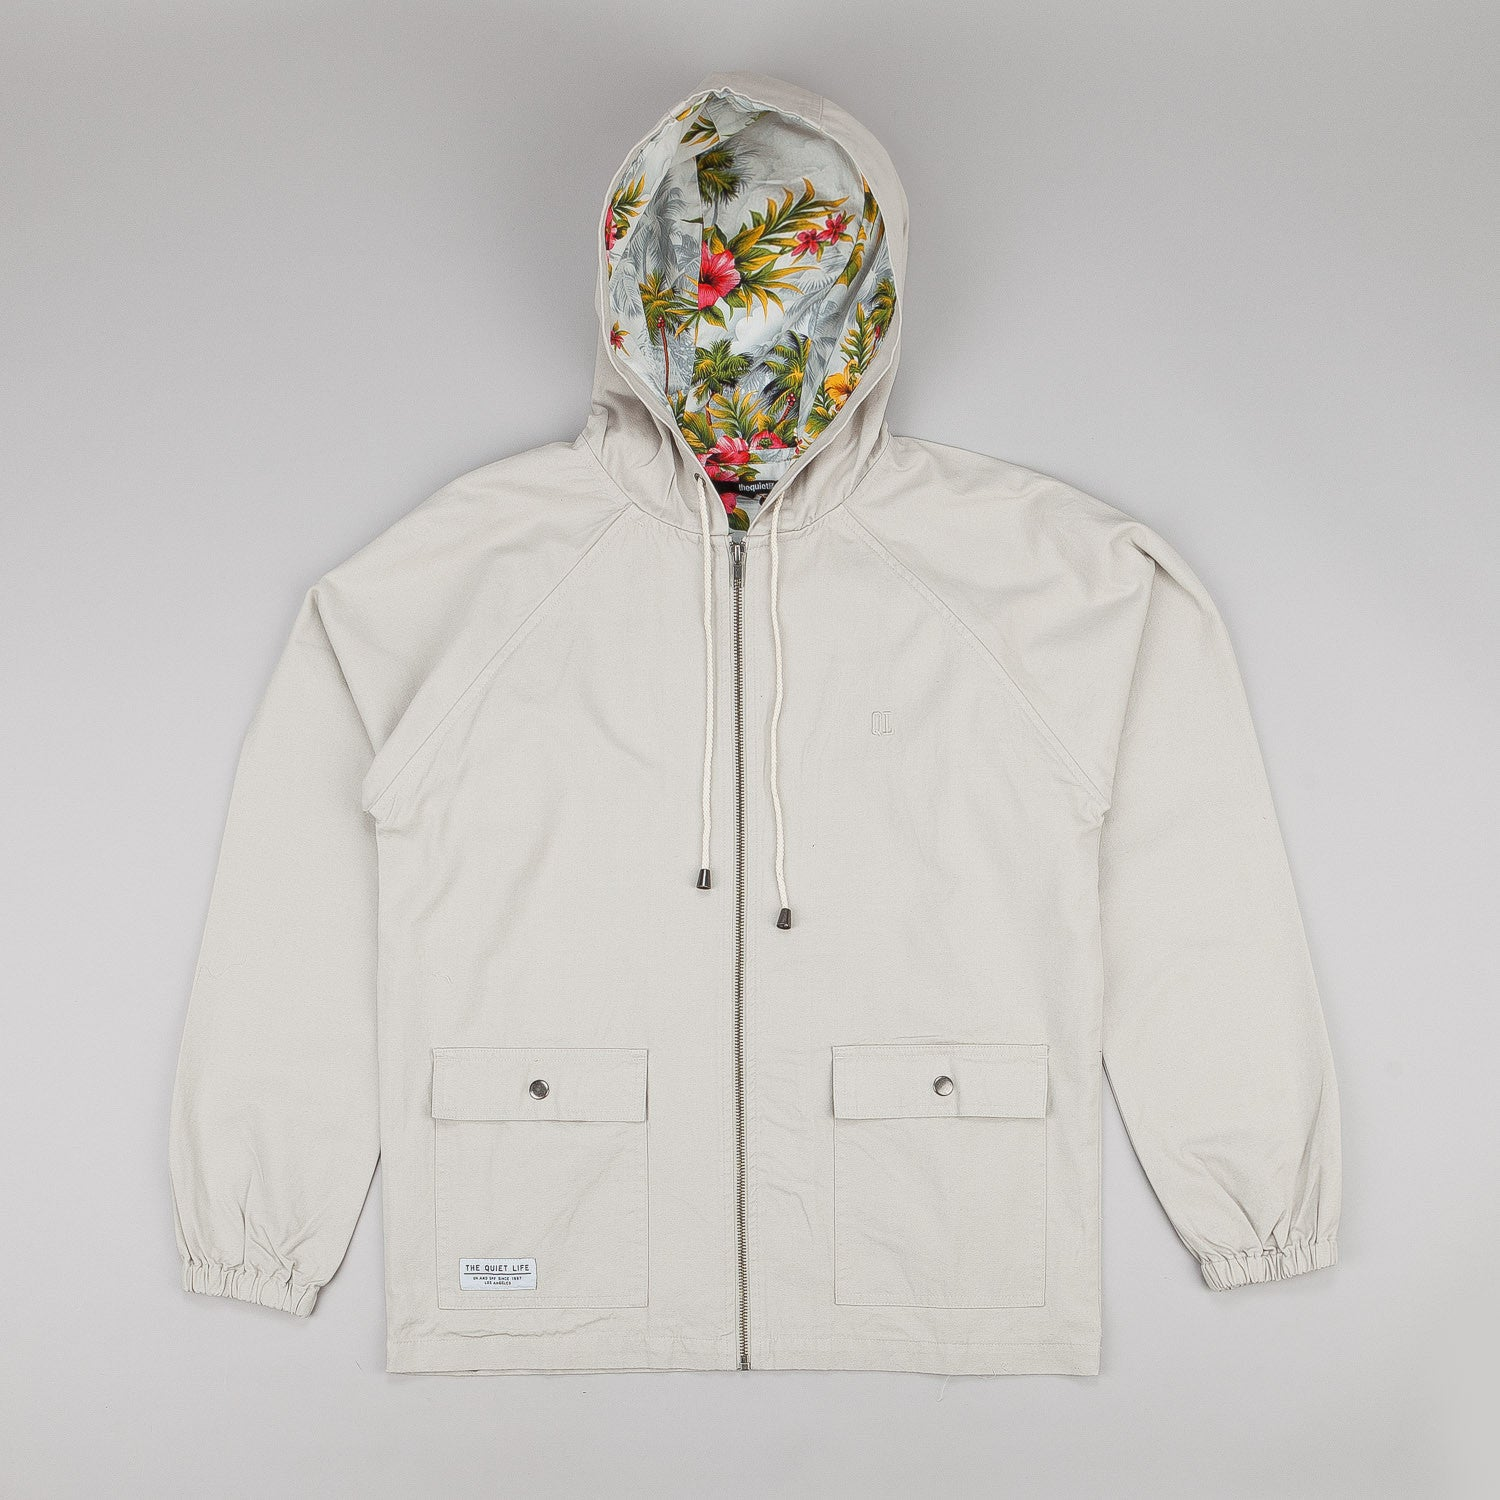 The Quiet Life Hawaiian Canvas Jacket